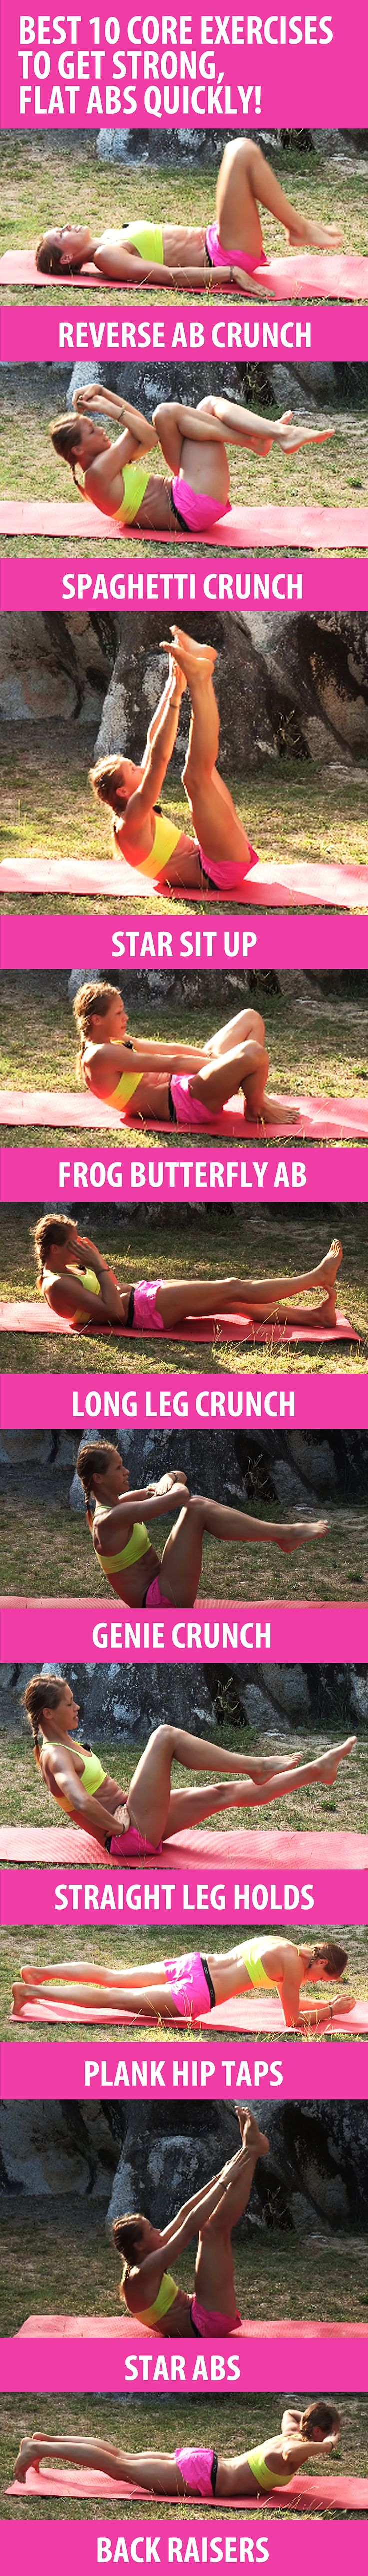 These 10 core exercises will help you sculpt six-pack abs, build core strength, and get rid of belly fat quickly.